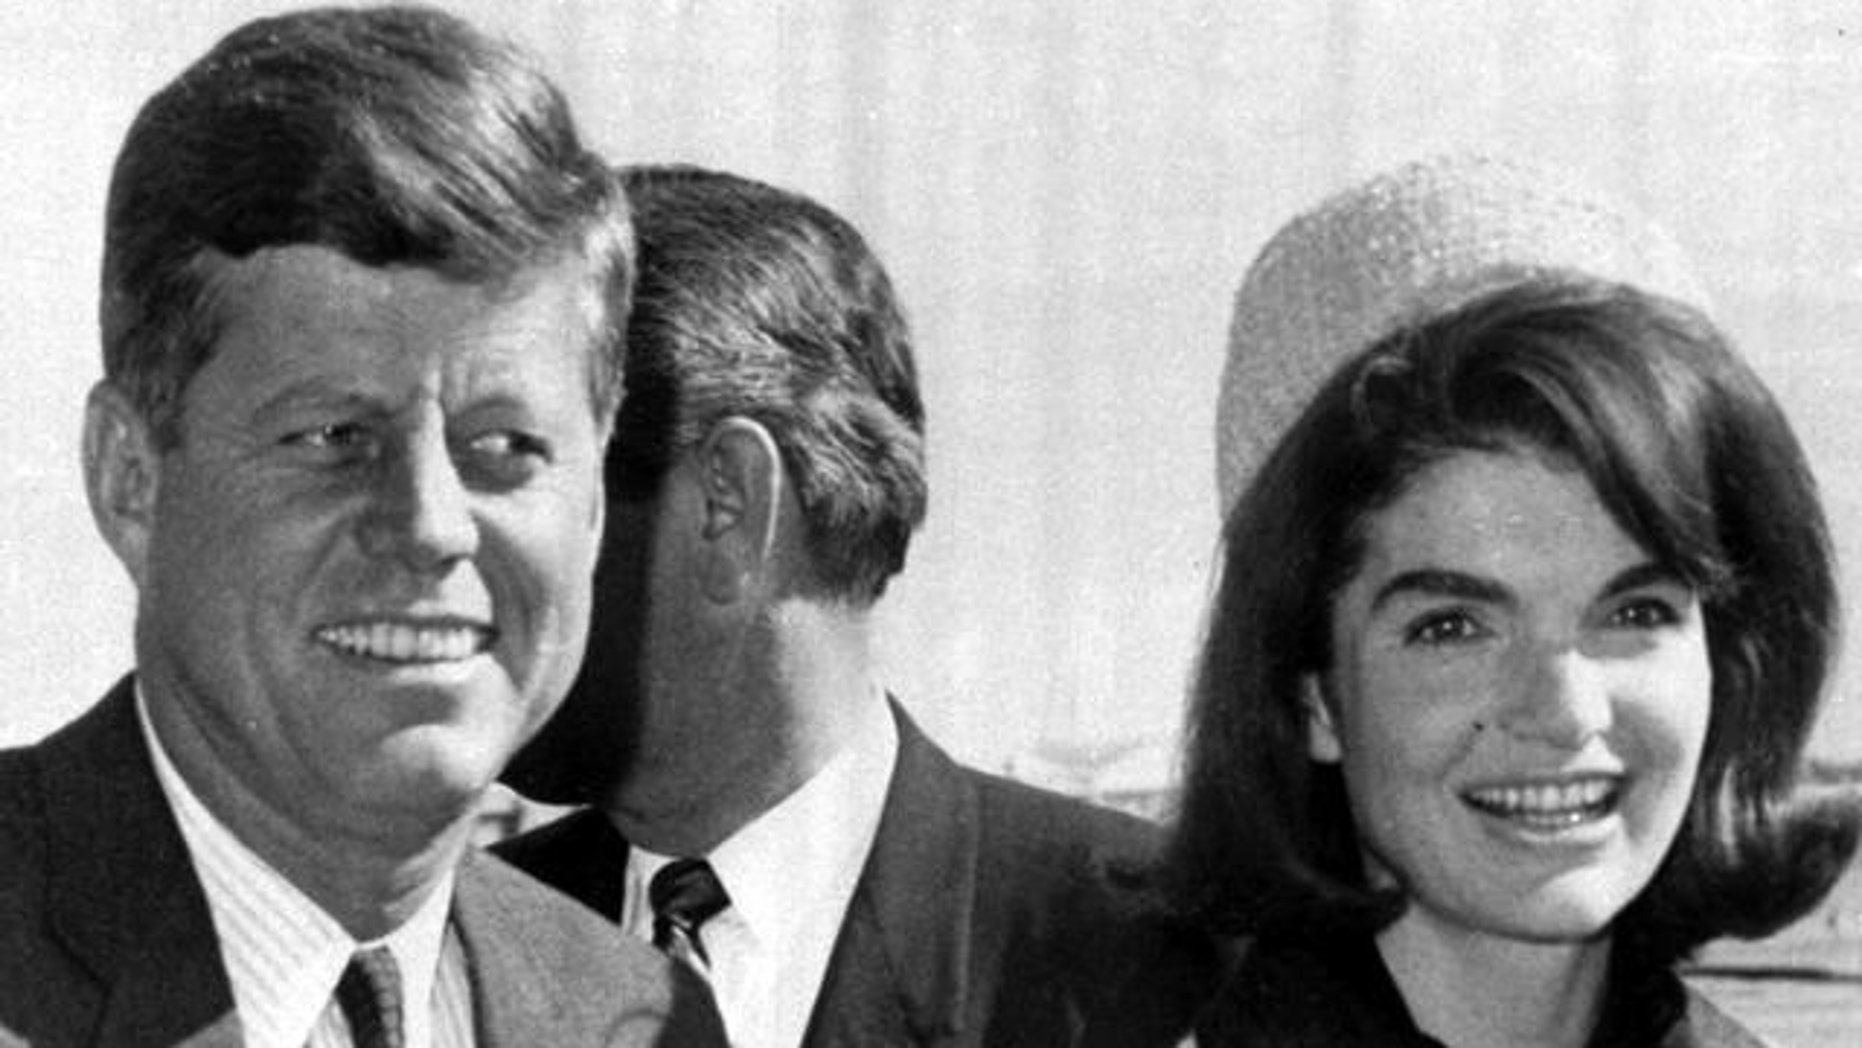 Jacqueline Kennedy-Onassis reportedly believed Vice President Lyndon B. Johnson was behind the assassination of her husband, according to tapes recorded by the former first lady just months after President John F. Kennedy's death.